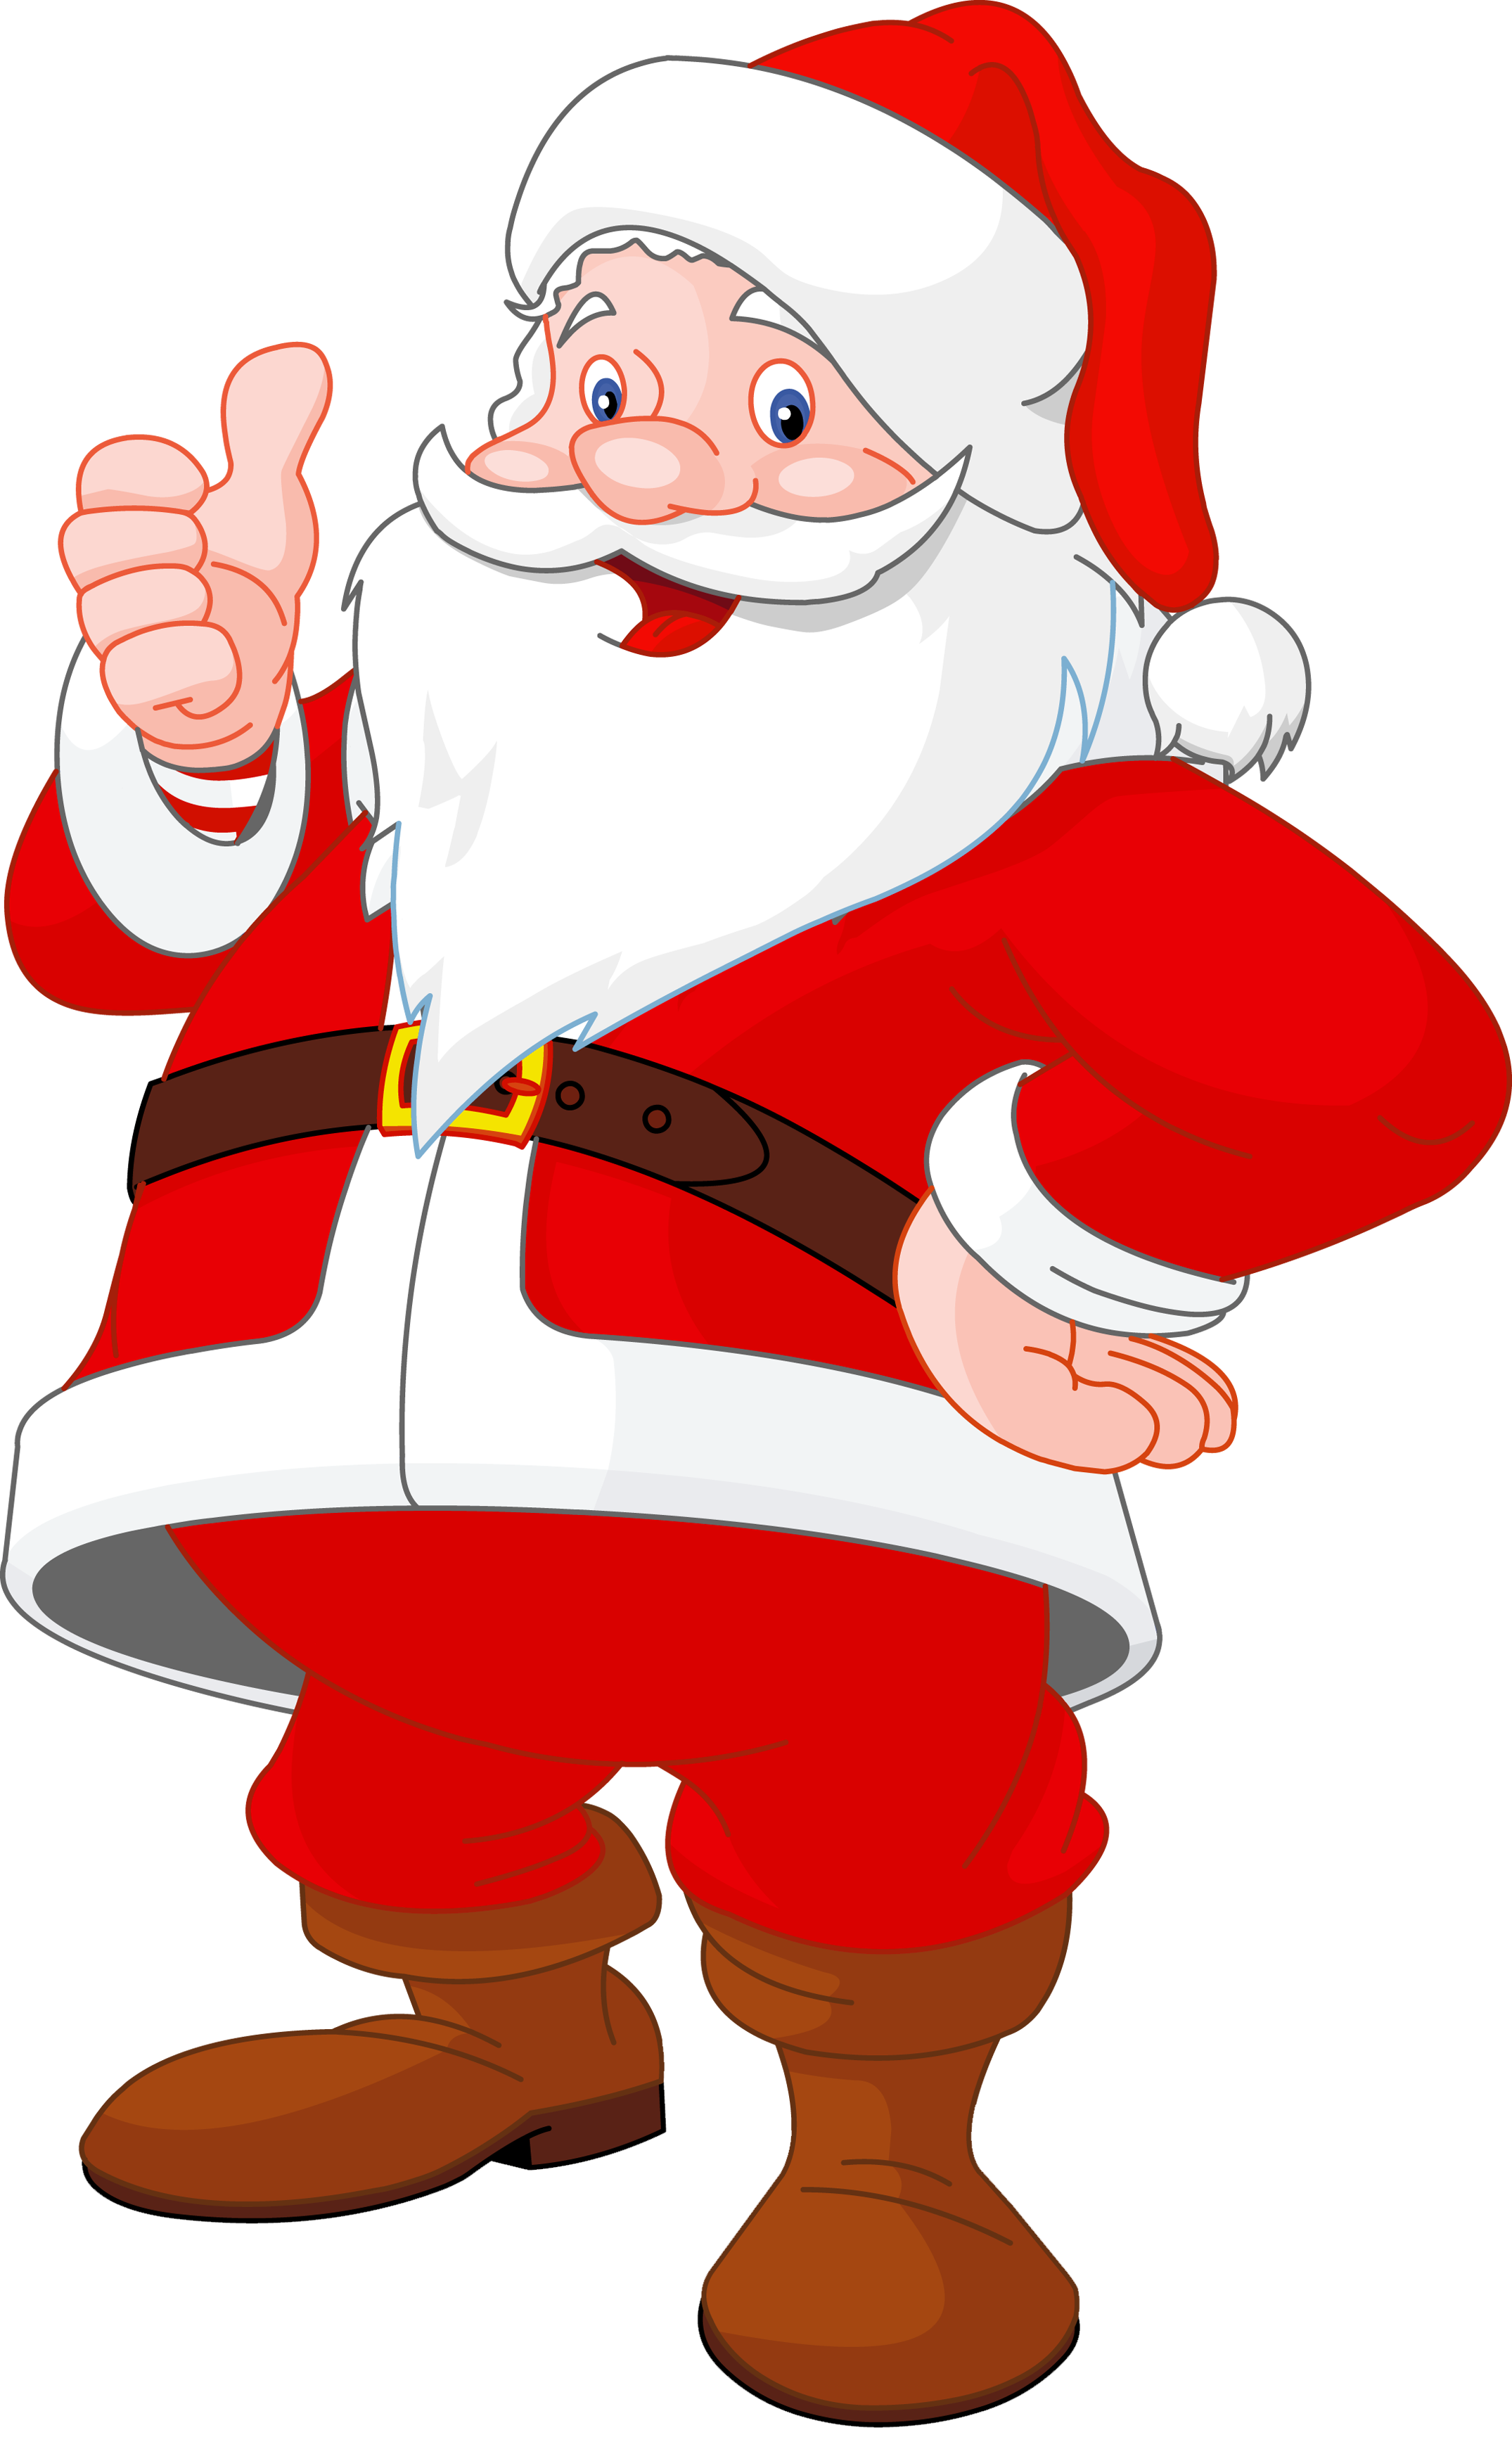 Transparent claus gallery yopriceville. Sunglasses clipart santa